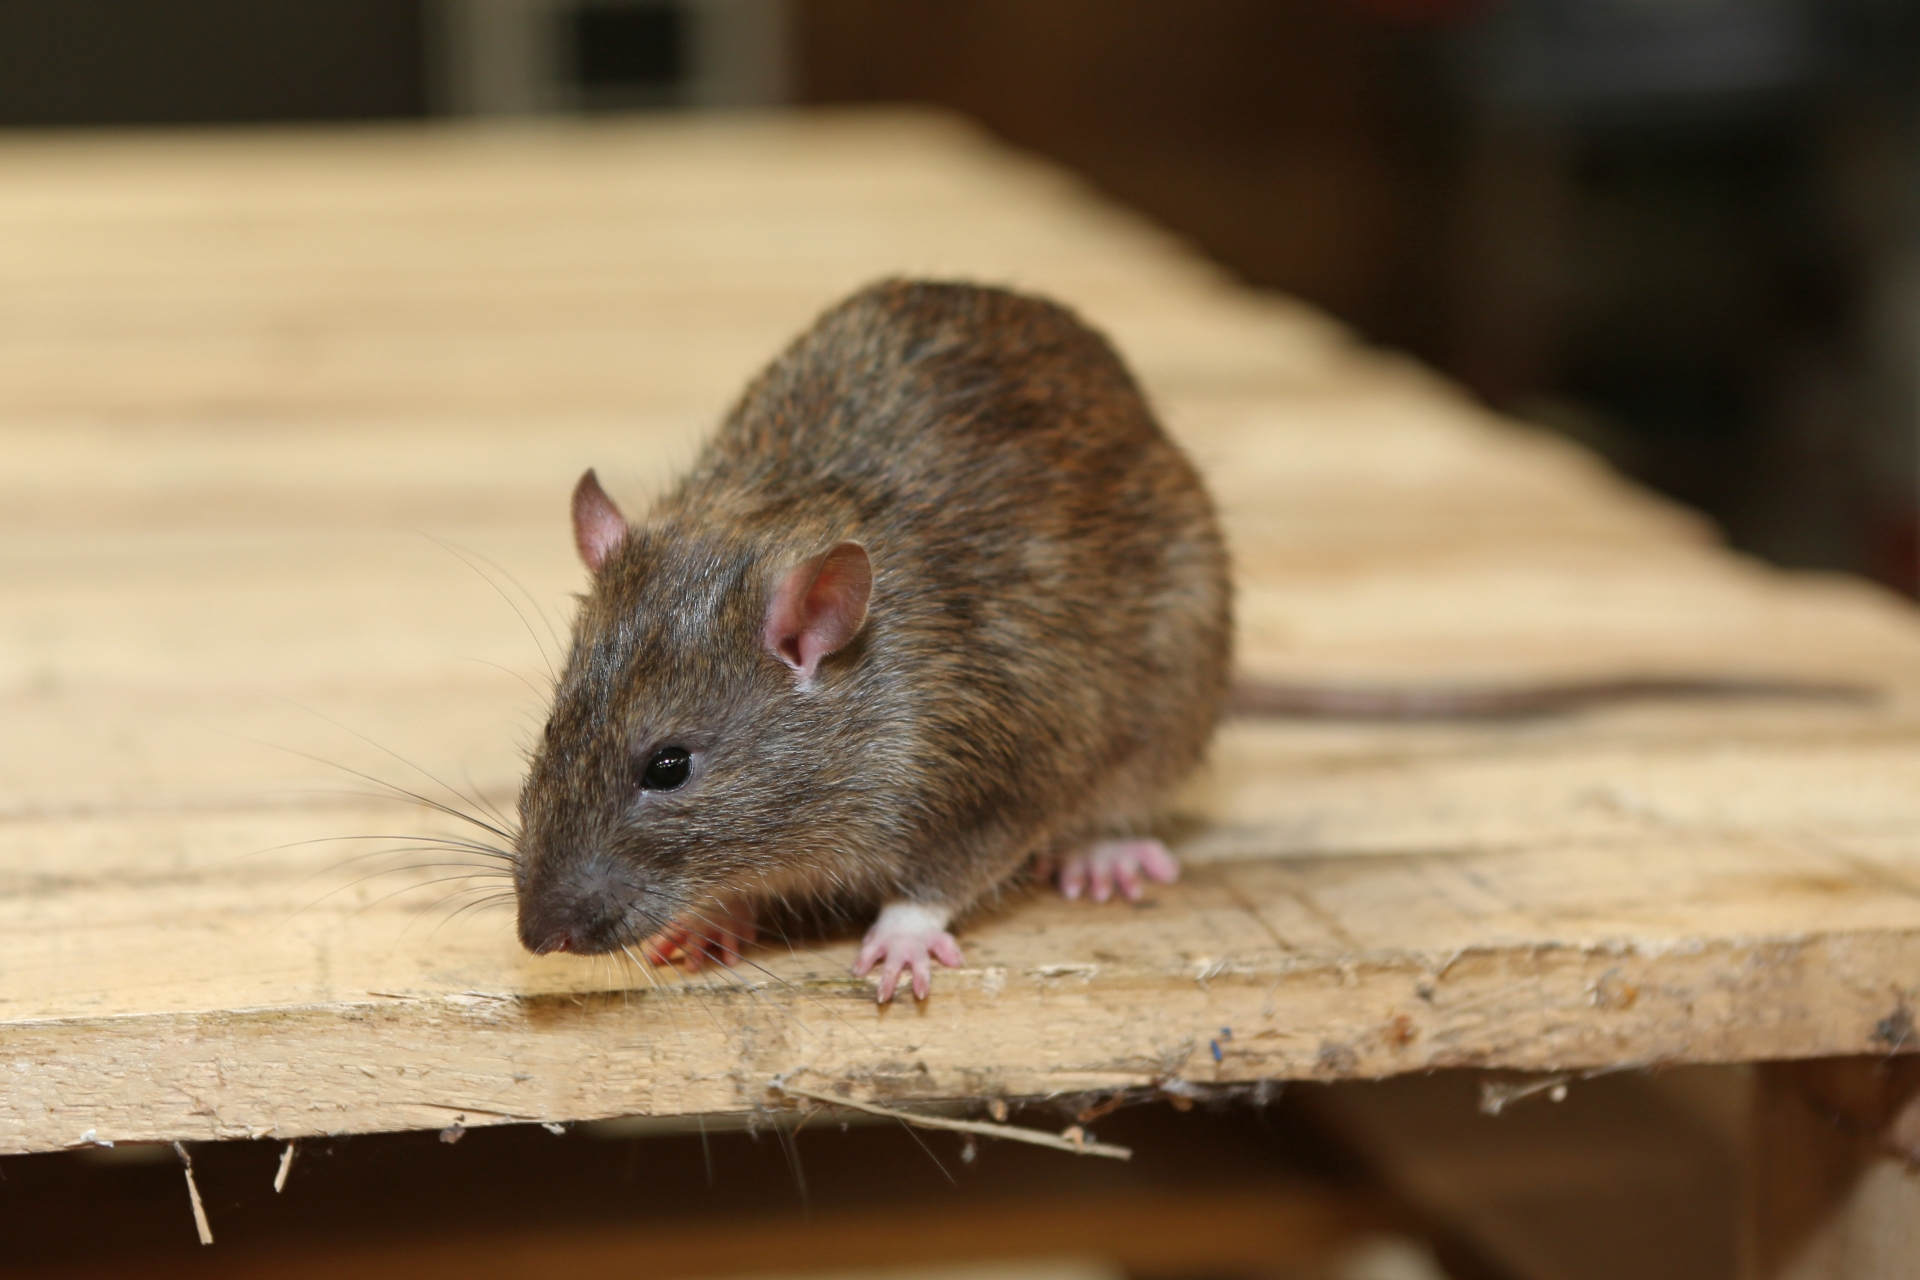 Rat Infestation, Pest Control in Aldgate, Monument, Tower Hill, EC3. Call Now 020 8166 9746